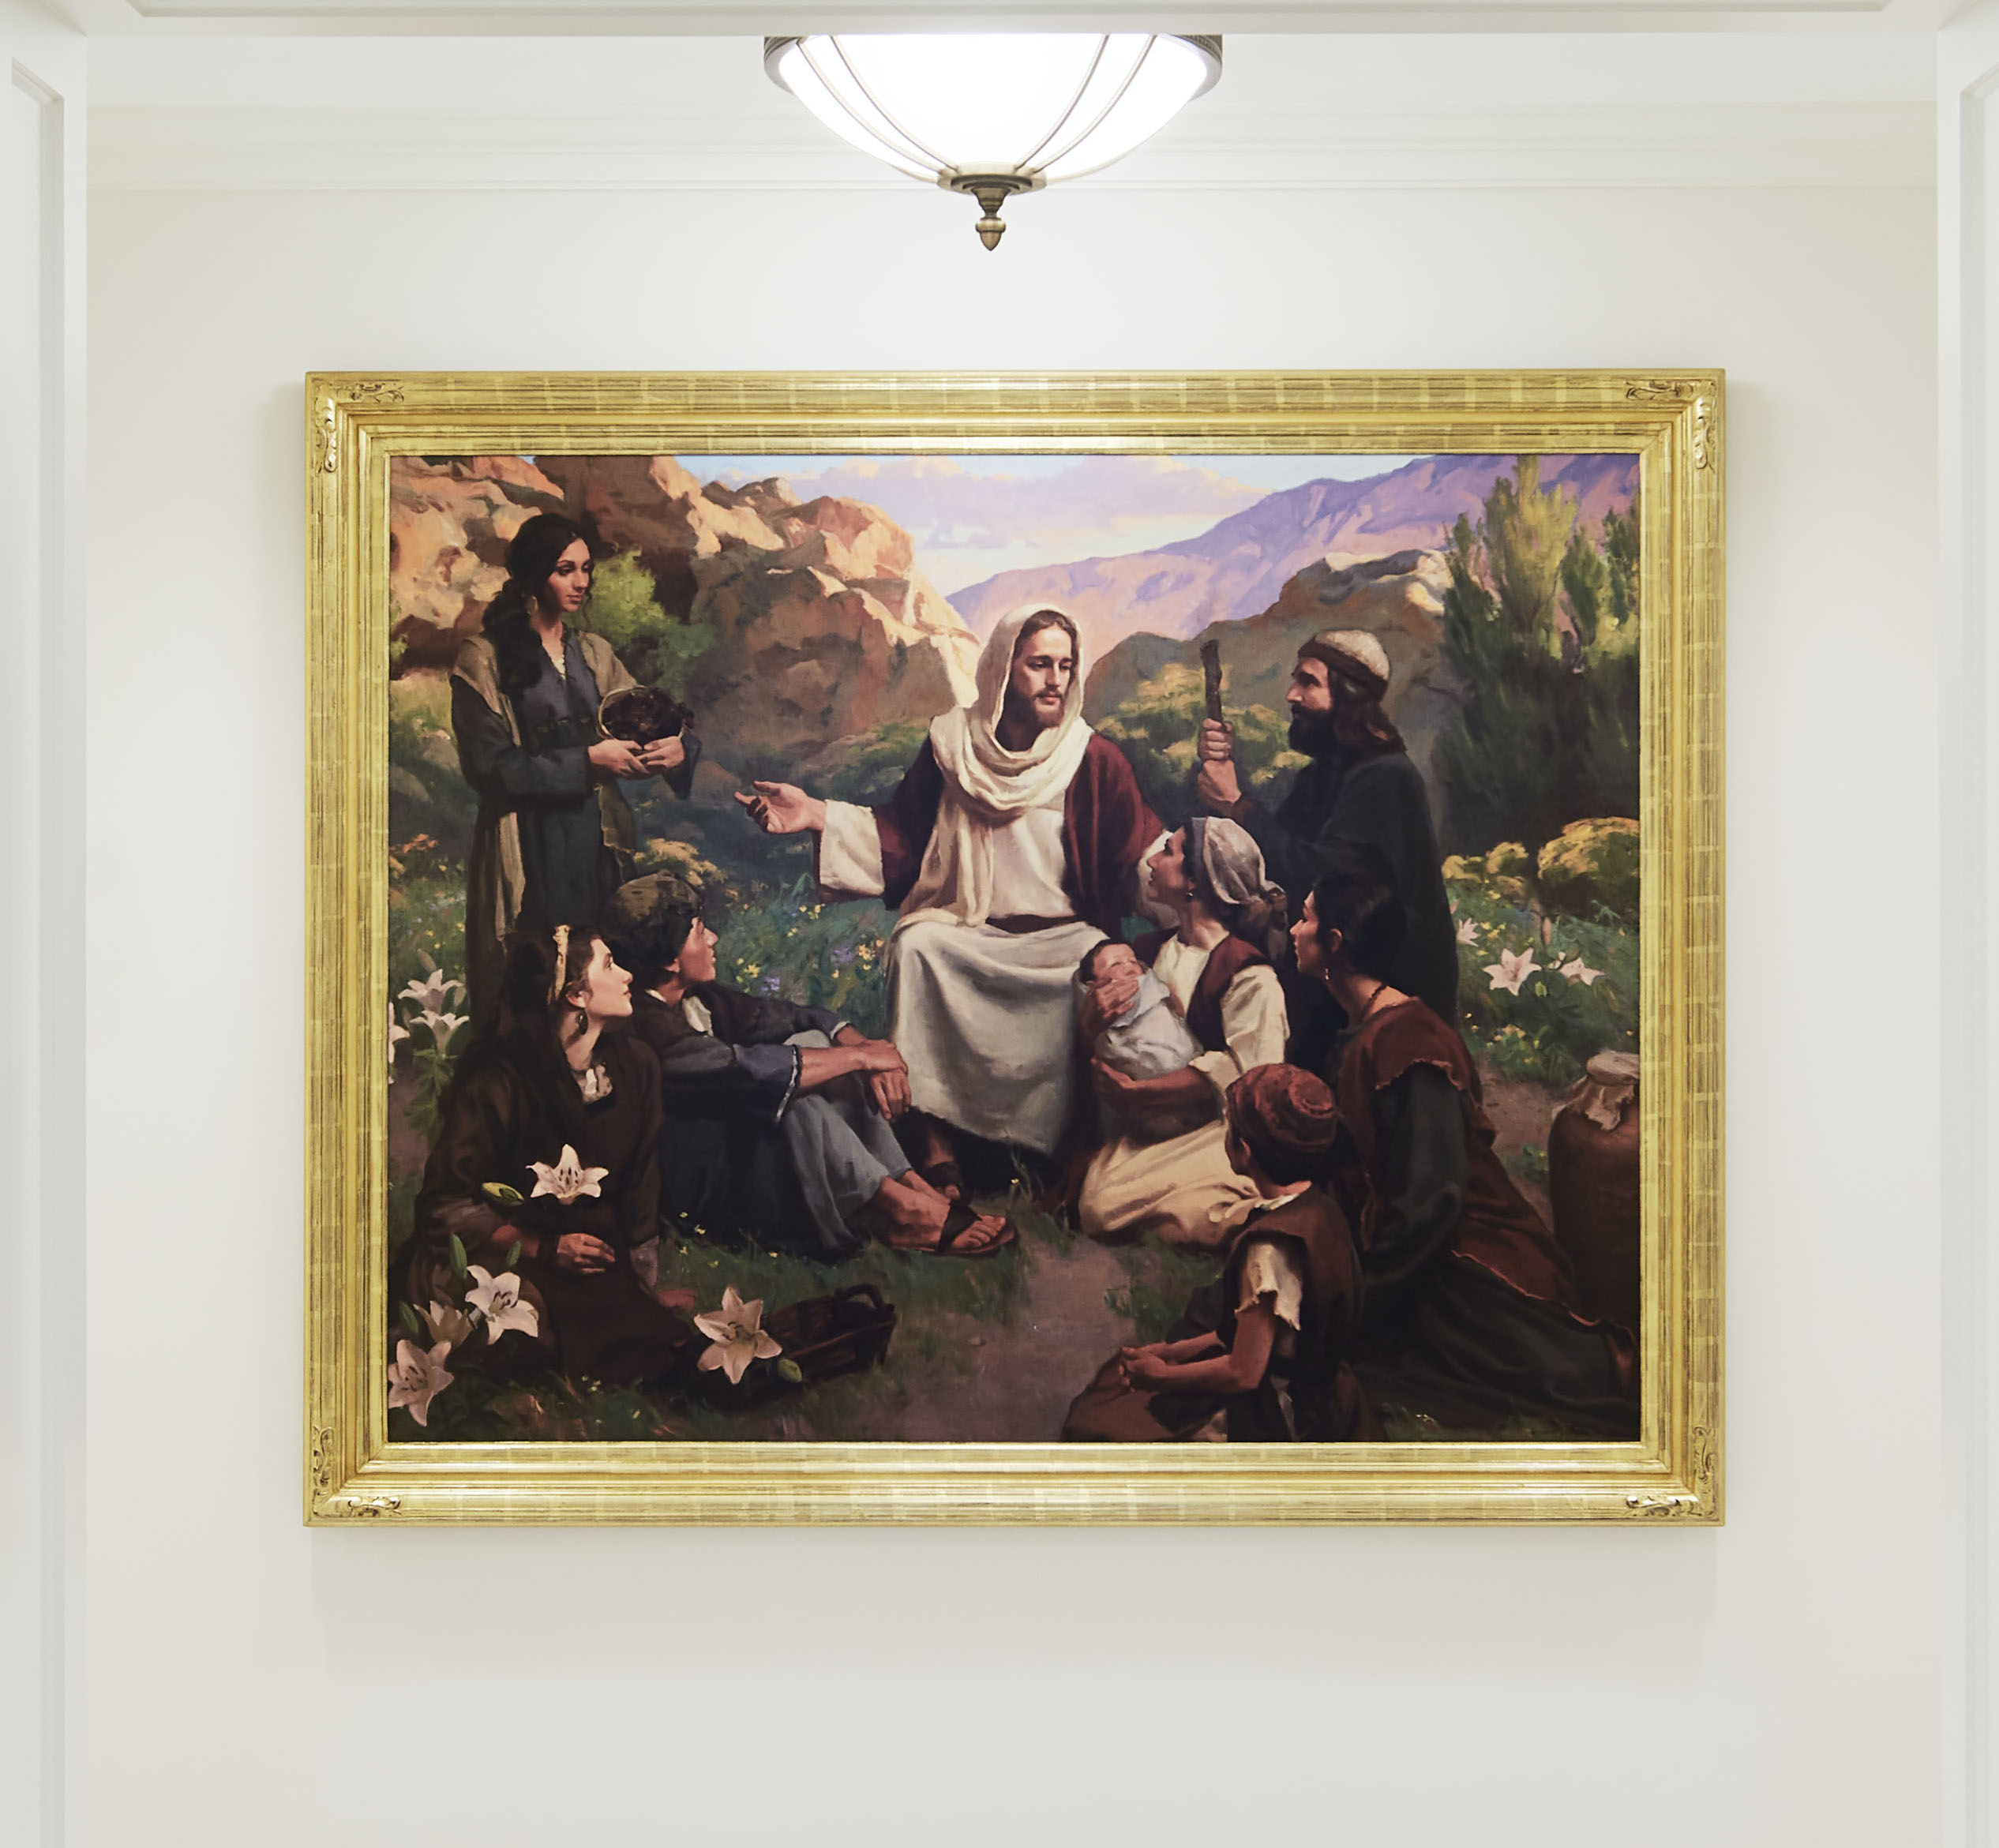 Paintings of the Savior are placed throughout the Memphis Tennessee Temple.